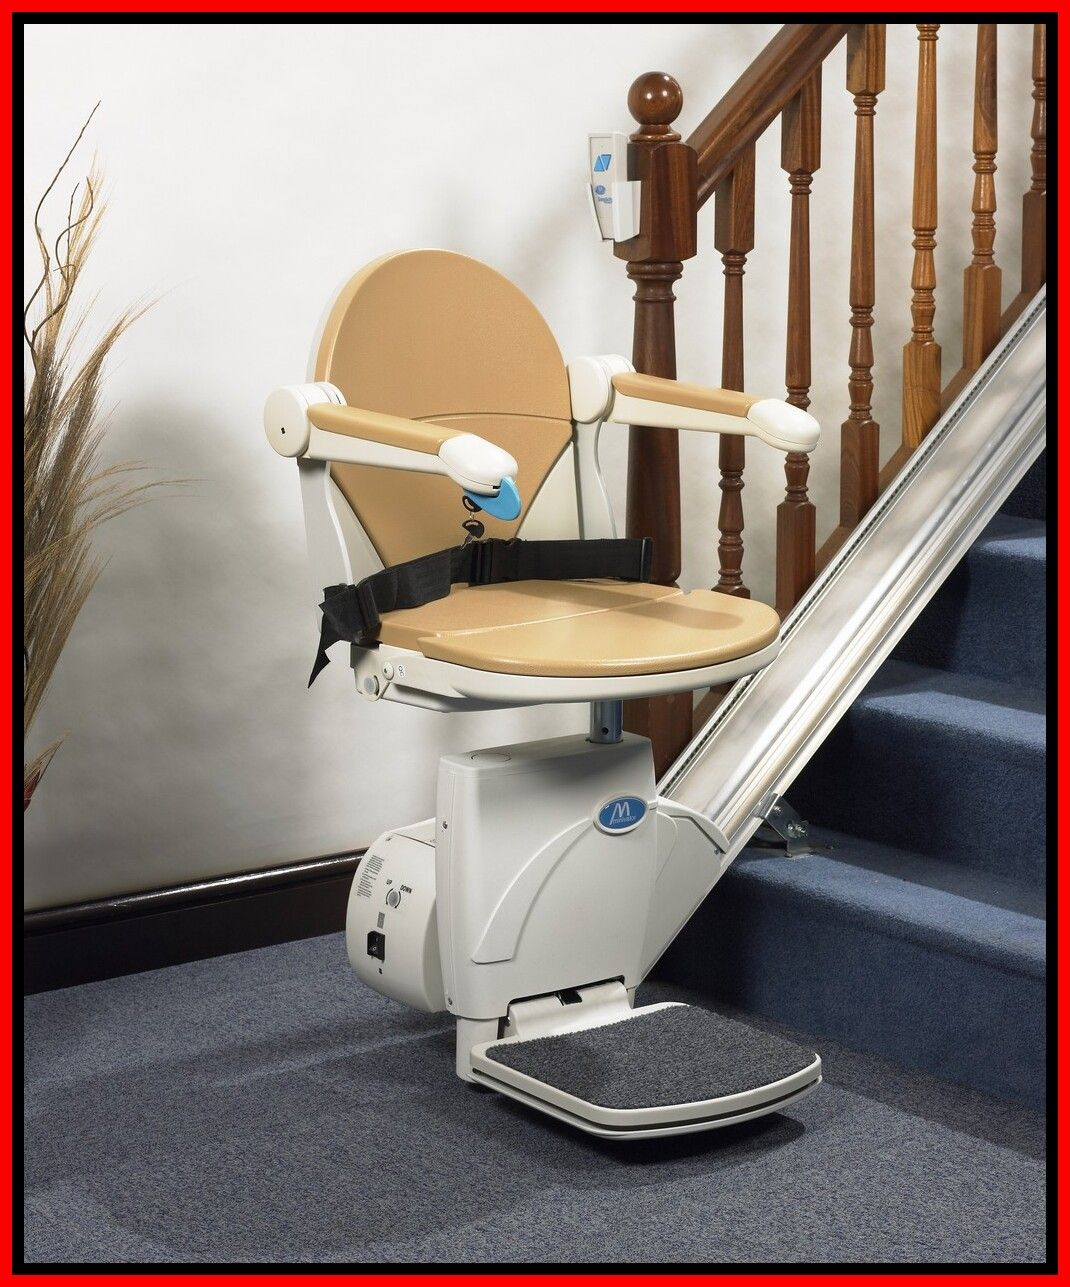 36 Reference Of Chair Lift For House Stairs In 2020 Chair Lift Dining Room Chairs Modern Bathroom Chair